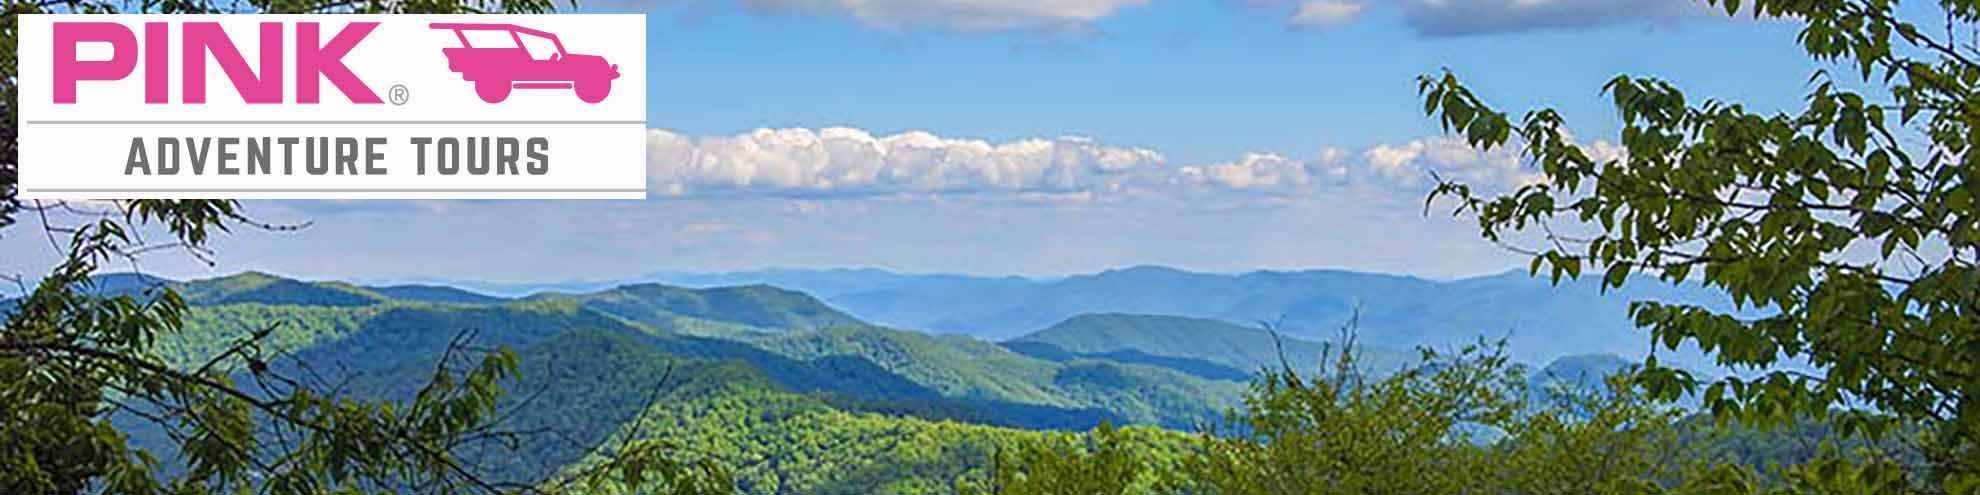 Pink Adventure Tours Discount Tickets - Valleys and Views Smoky Mountains Tour